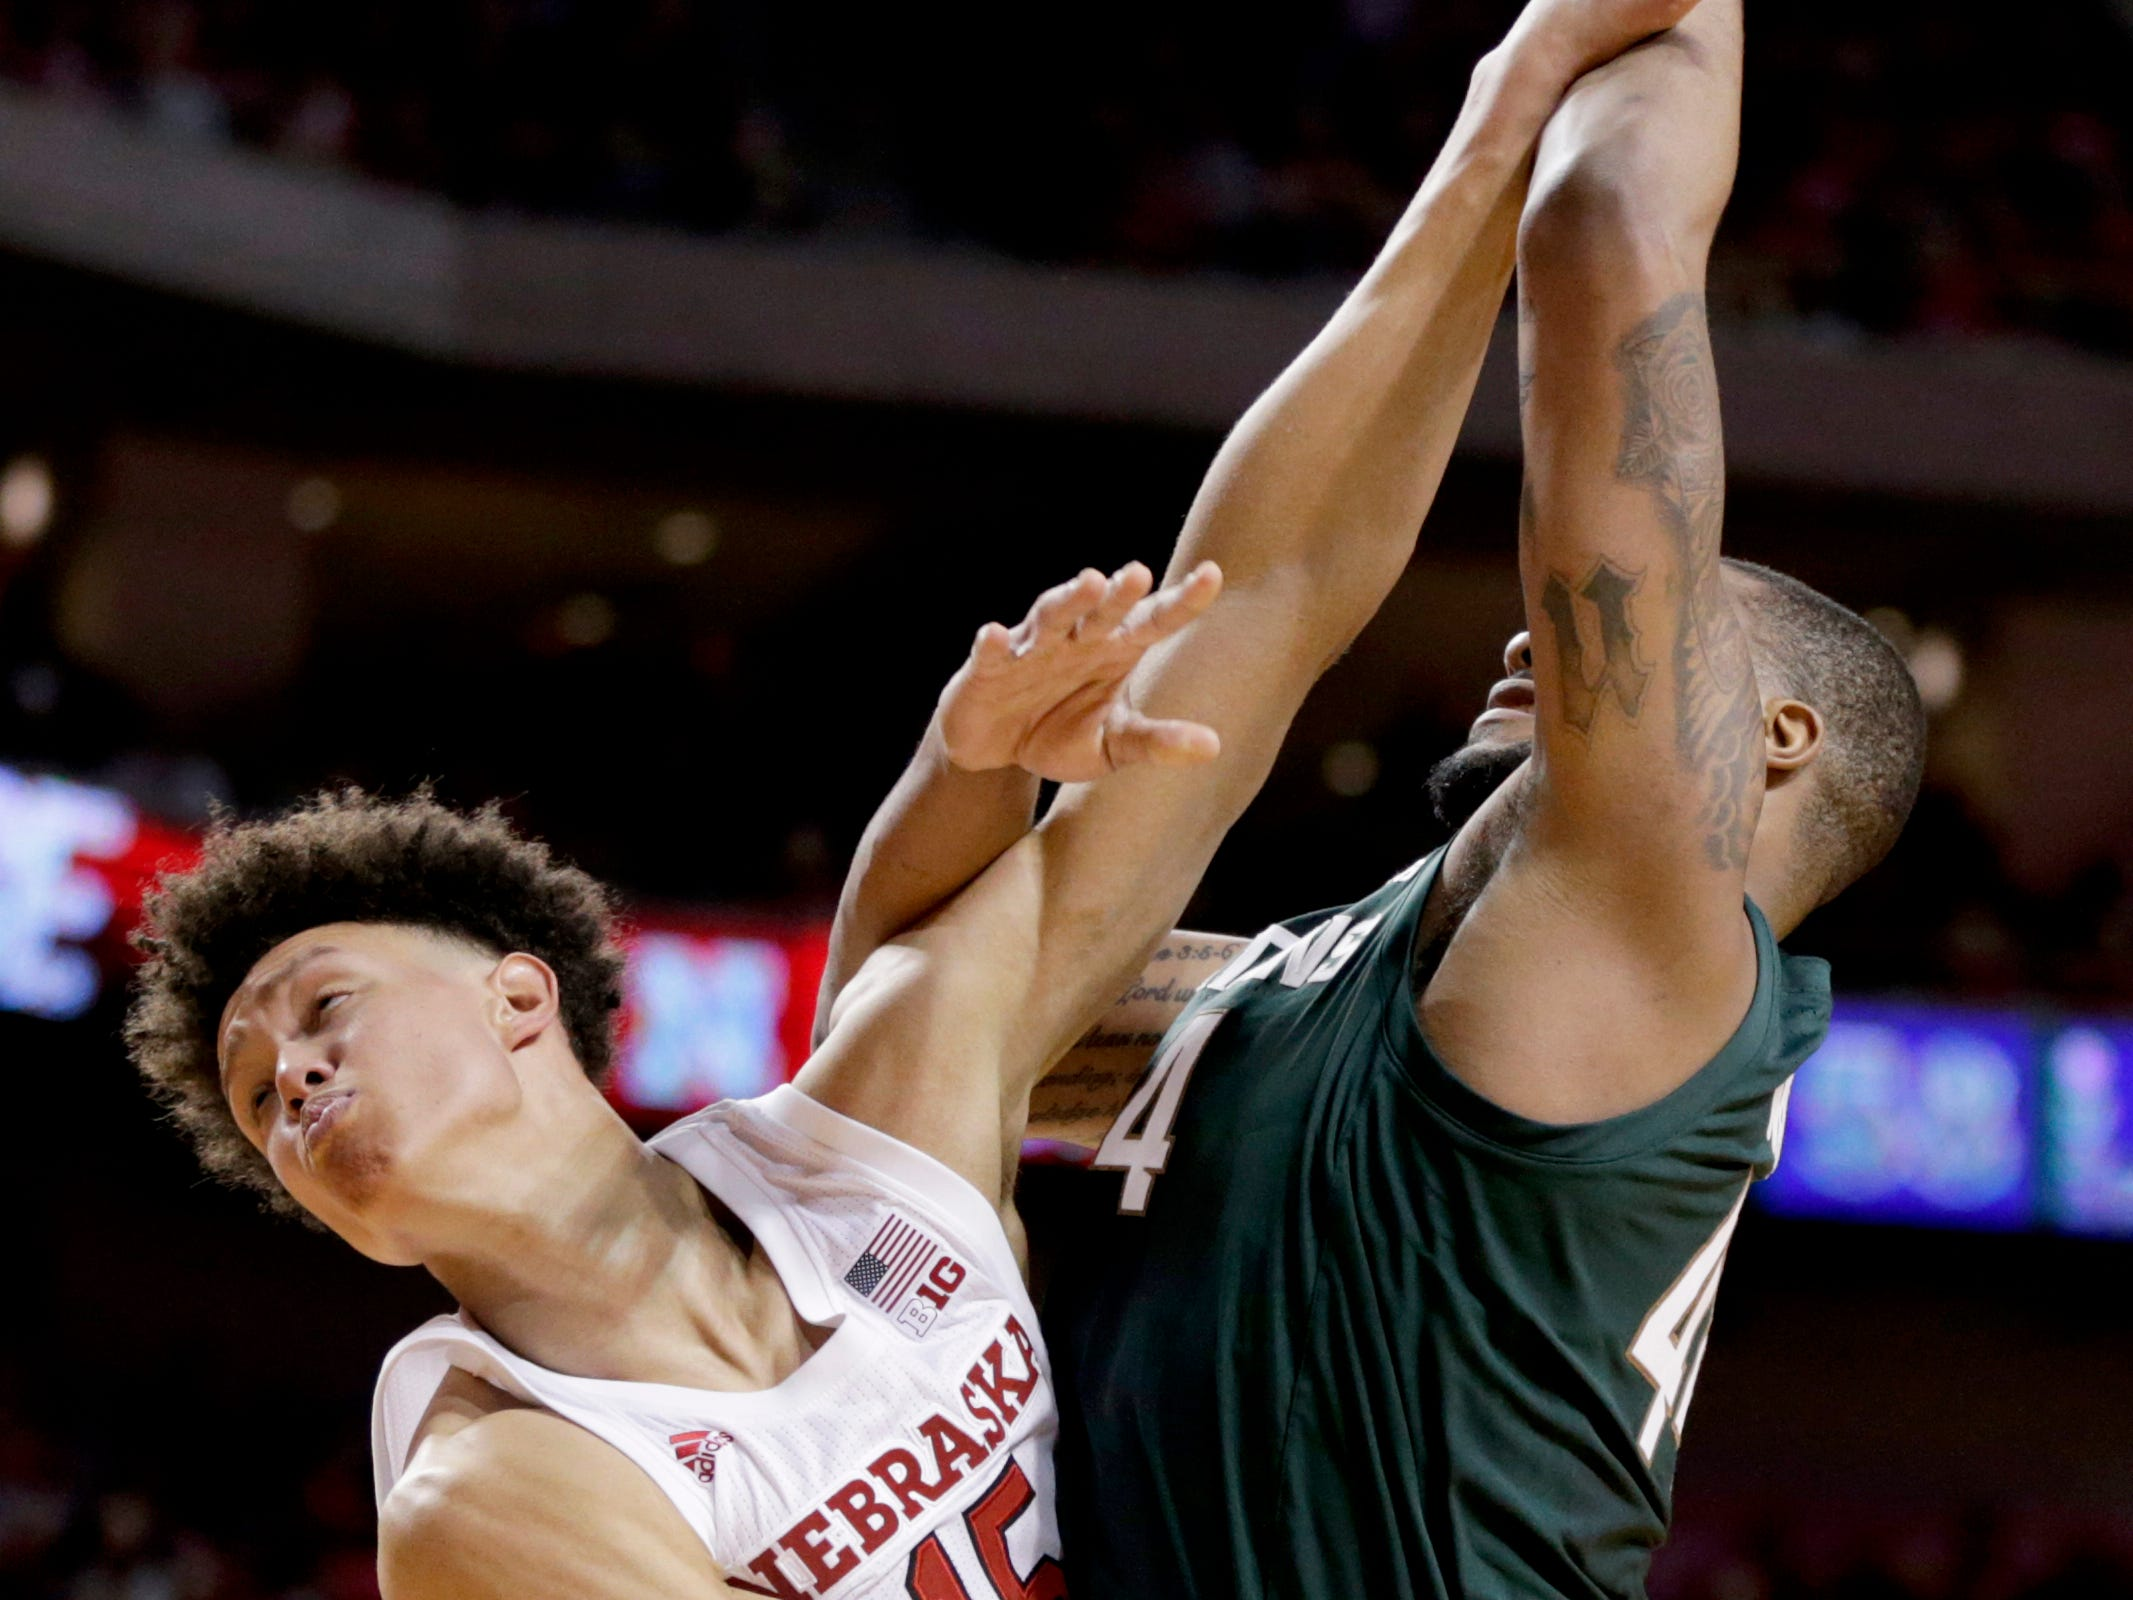 Nebraska's Isaiah Roby (15) commits his fifth foul as he tries to block a shot by Michigan State's Nick Ward (44) during the second half.